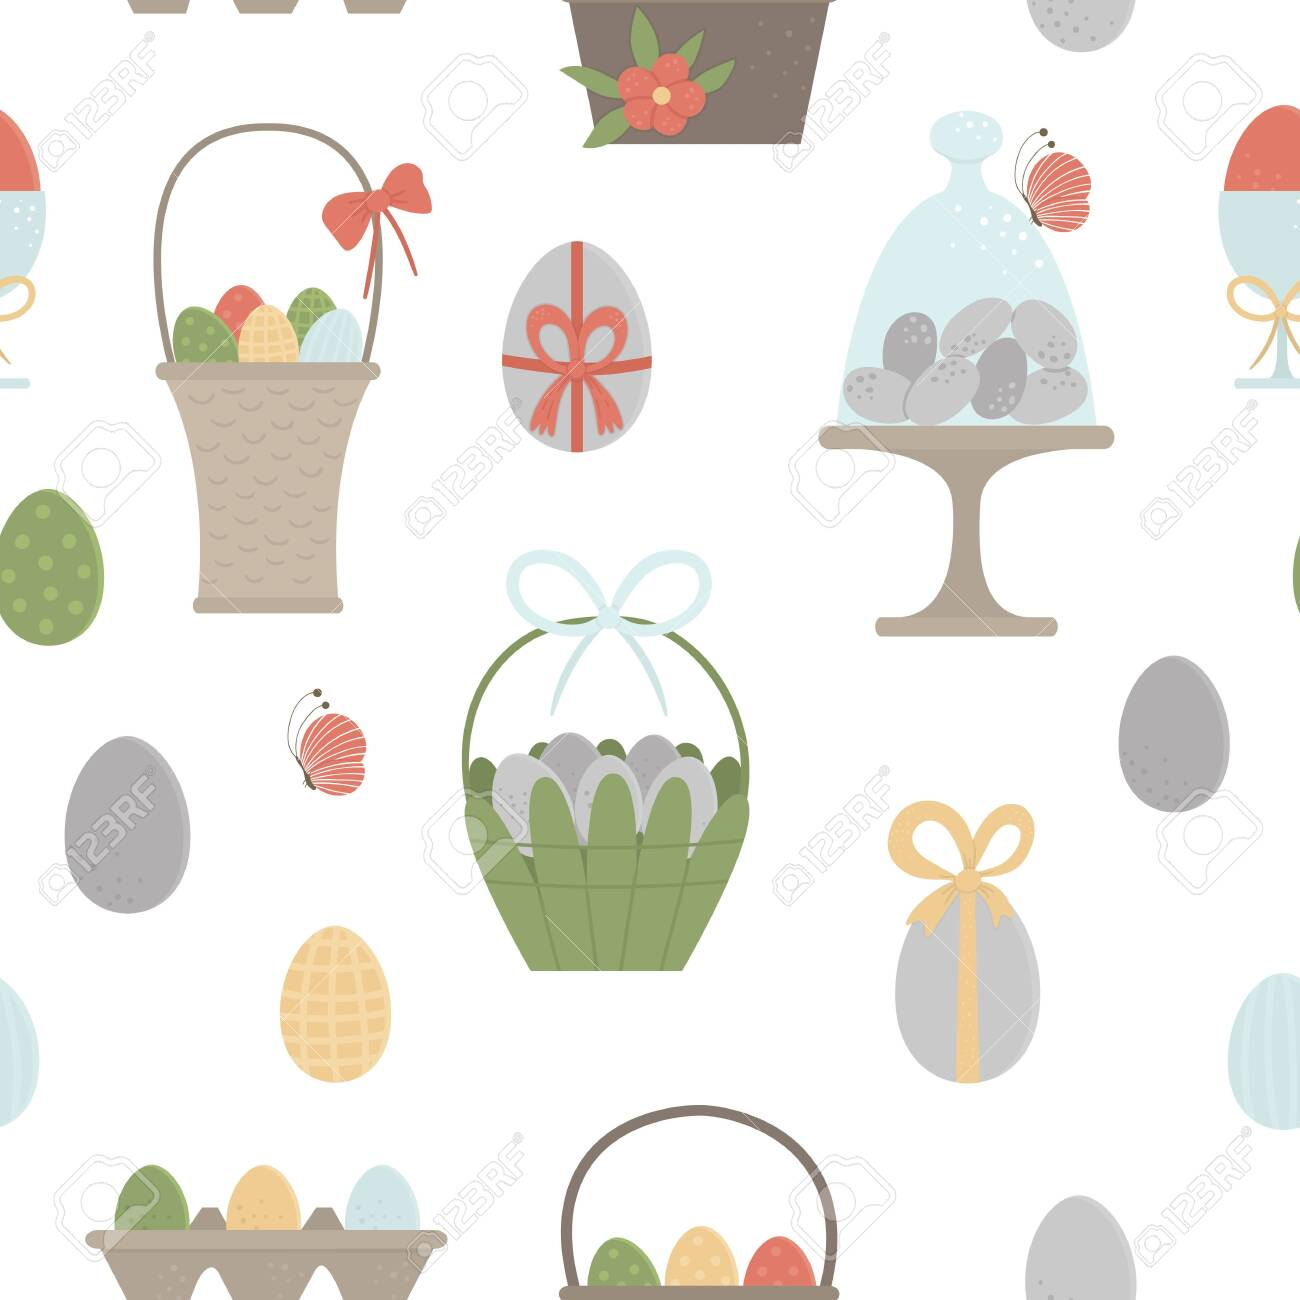 Vector seamless pattern with colored eggs, baskets, packaging with bows, butterfly and flowers. Easter background with traditional symbols. Spring digital paper. - 137355101